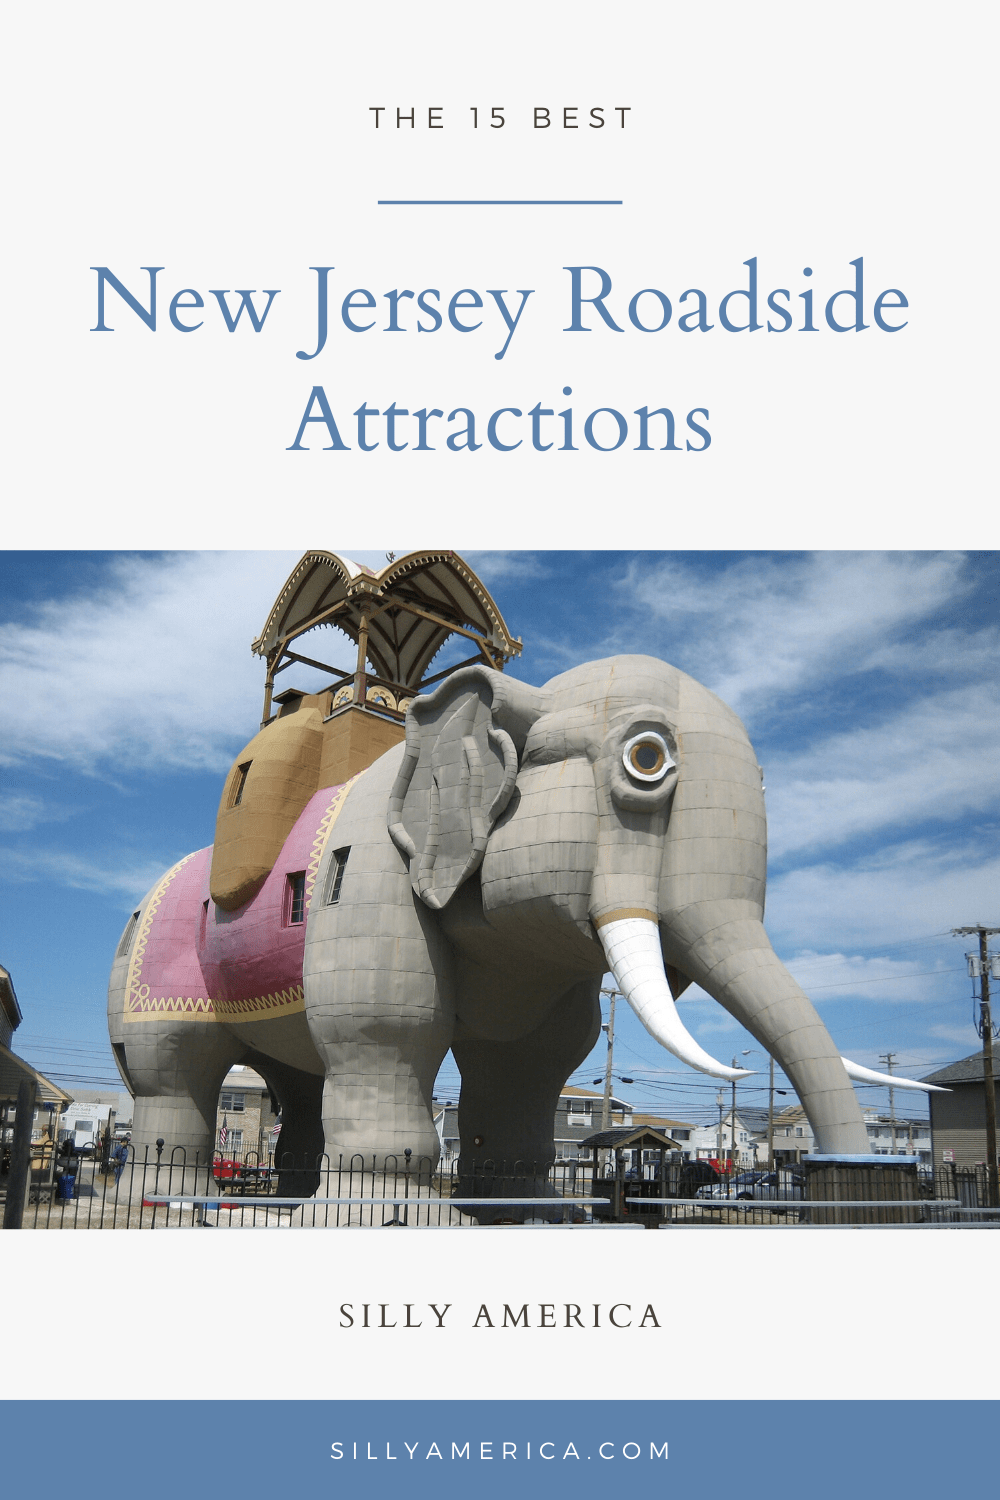 The best New Jersey roadside attractions to visit on a New Jersey road trip or weekend getaway. Add these roadside oddities to your travel bucket list or road trip itinerary and visit them on an Atlantic City vacation or trip to the Jersey Shore. #NewJerseyRoadsideAttractions #NewJerseyRoadsideAttraction #RoadsideAttractions #RoadsideAttraction #RoadTrip #NewJerseyRoadTrip #NewJerseyRoadTripMap #NewJerseyRoadTripItinerary #WeirdRoadsideAttractions